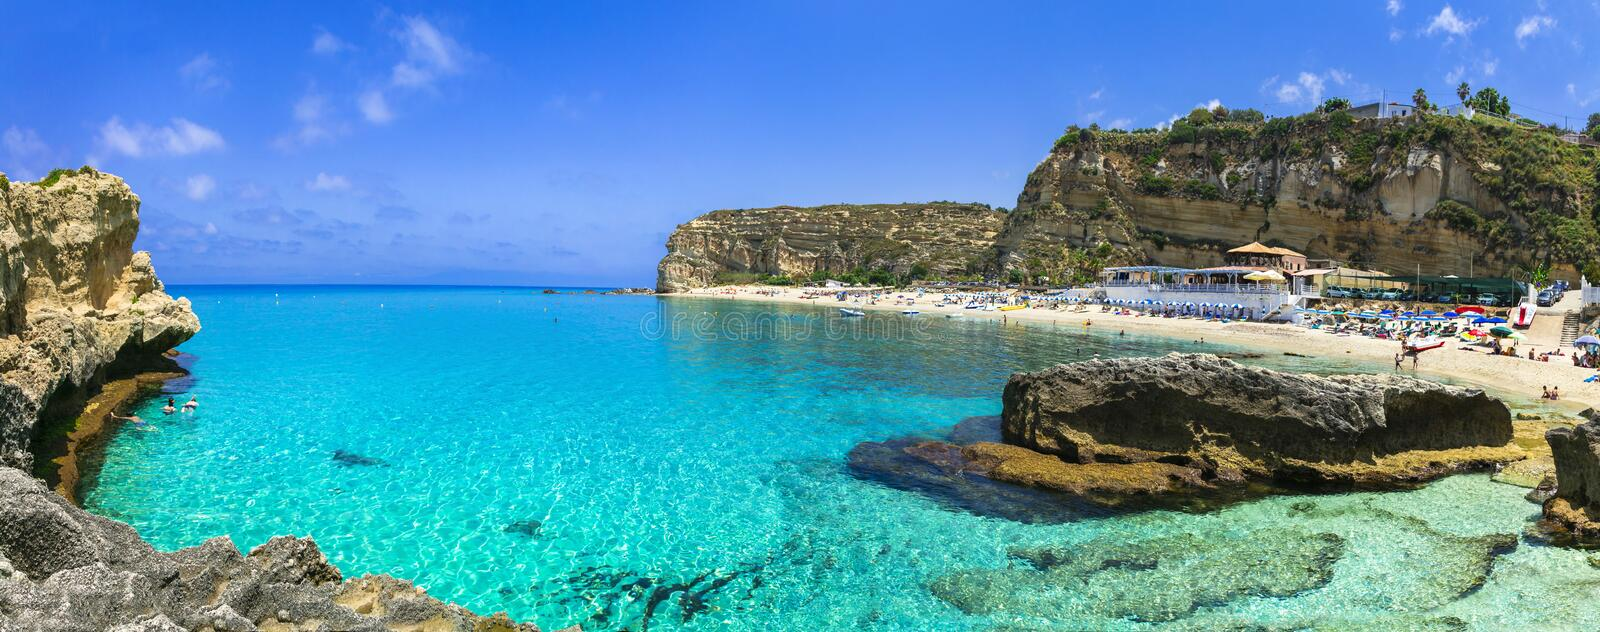 Beautiful turquoise sea and great beaches of Calabria. Oasi beach near Tropea town royalty free stock photos